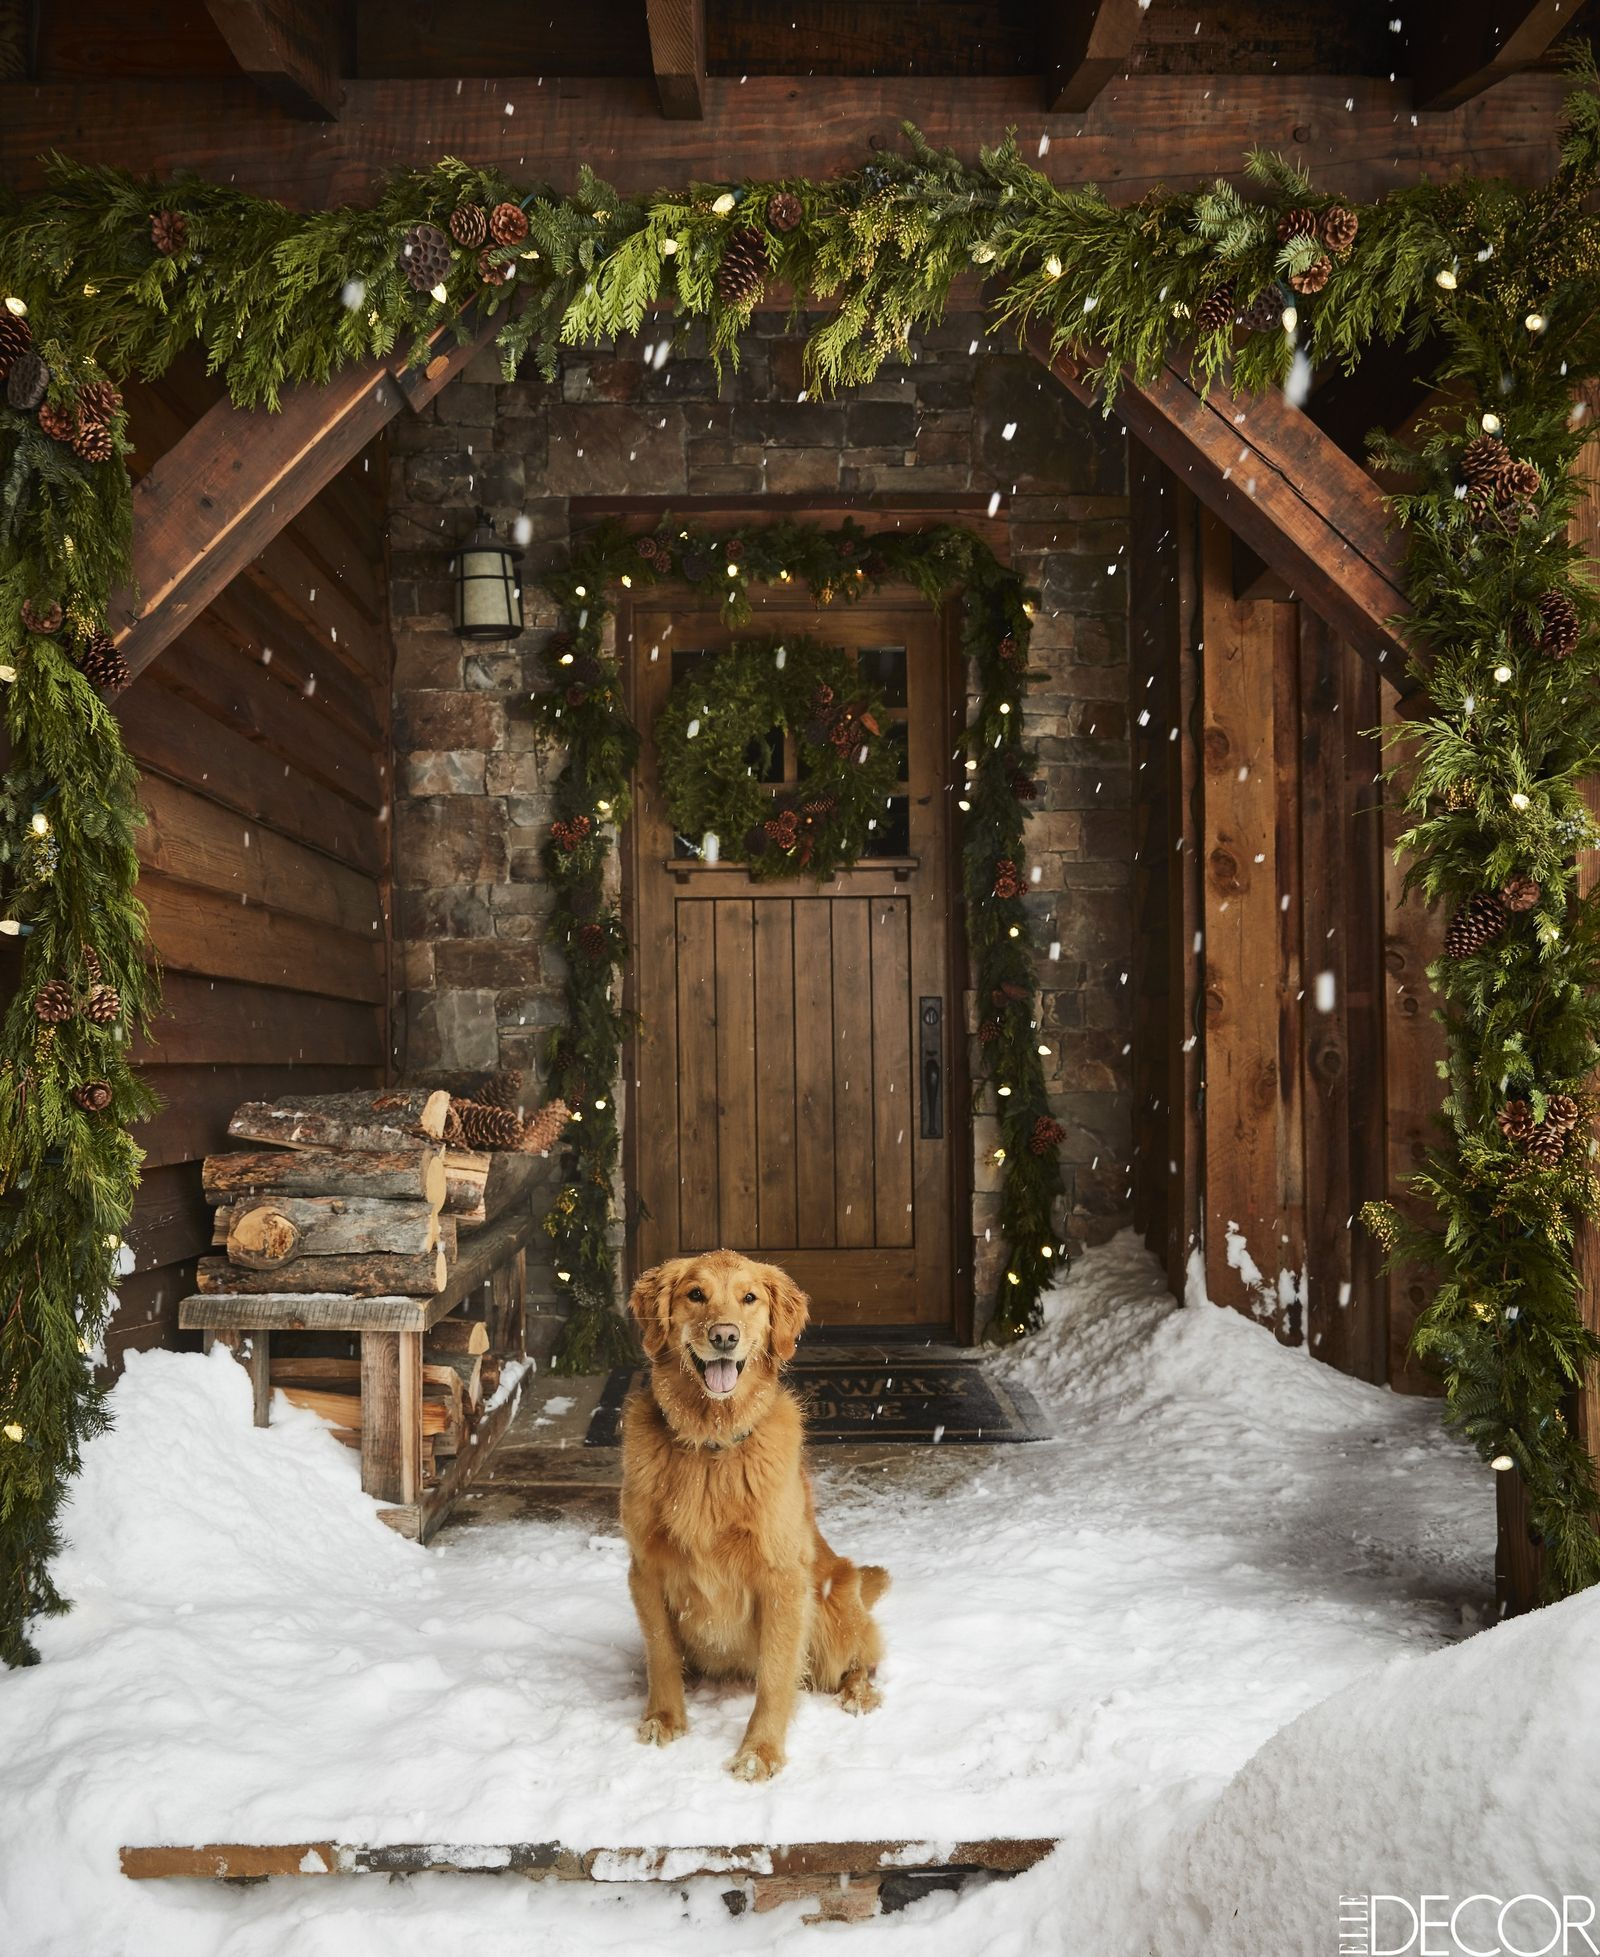 Dream Of Log Home Do Your Homework: Step Inside Your Winter Dream Home Nestled In The Snowy